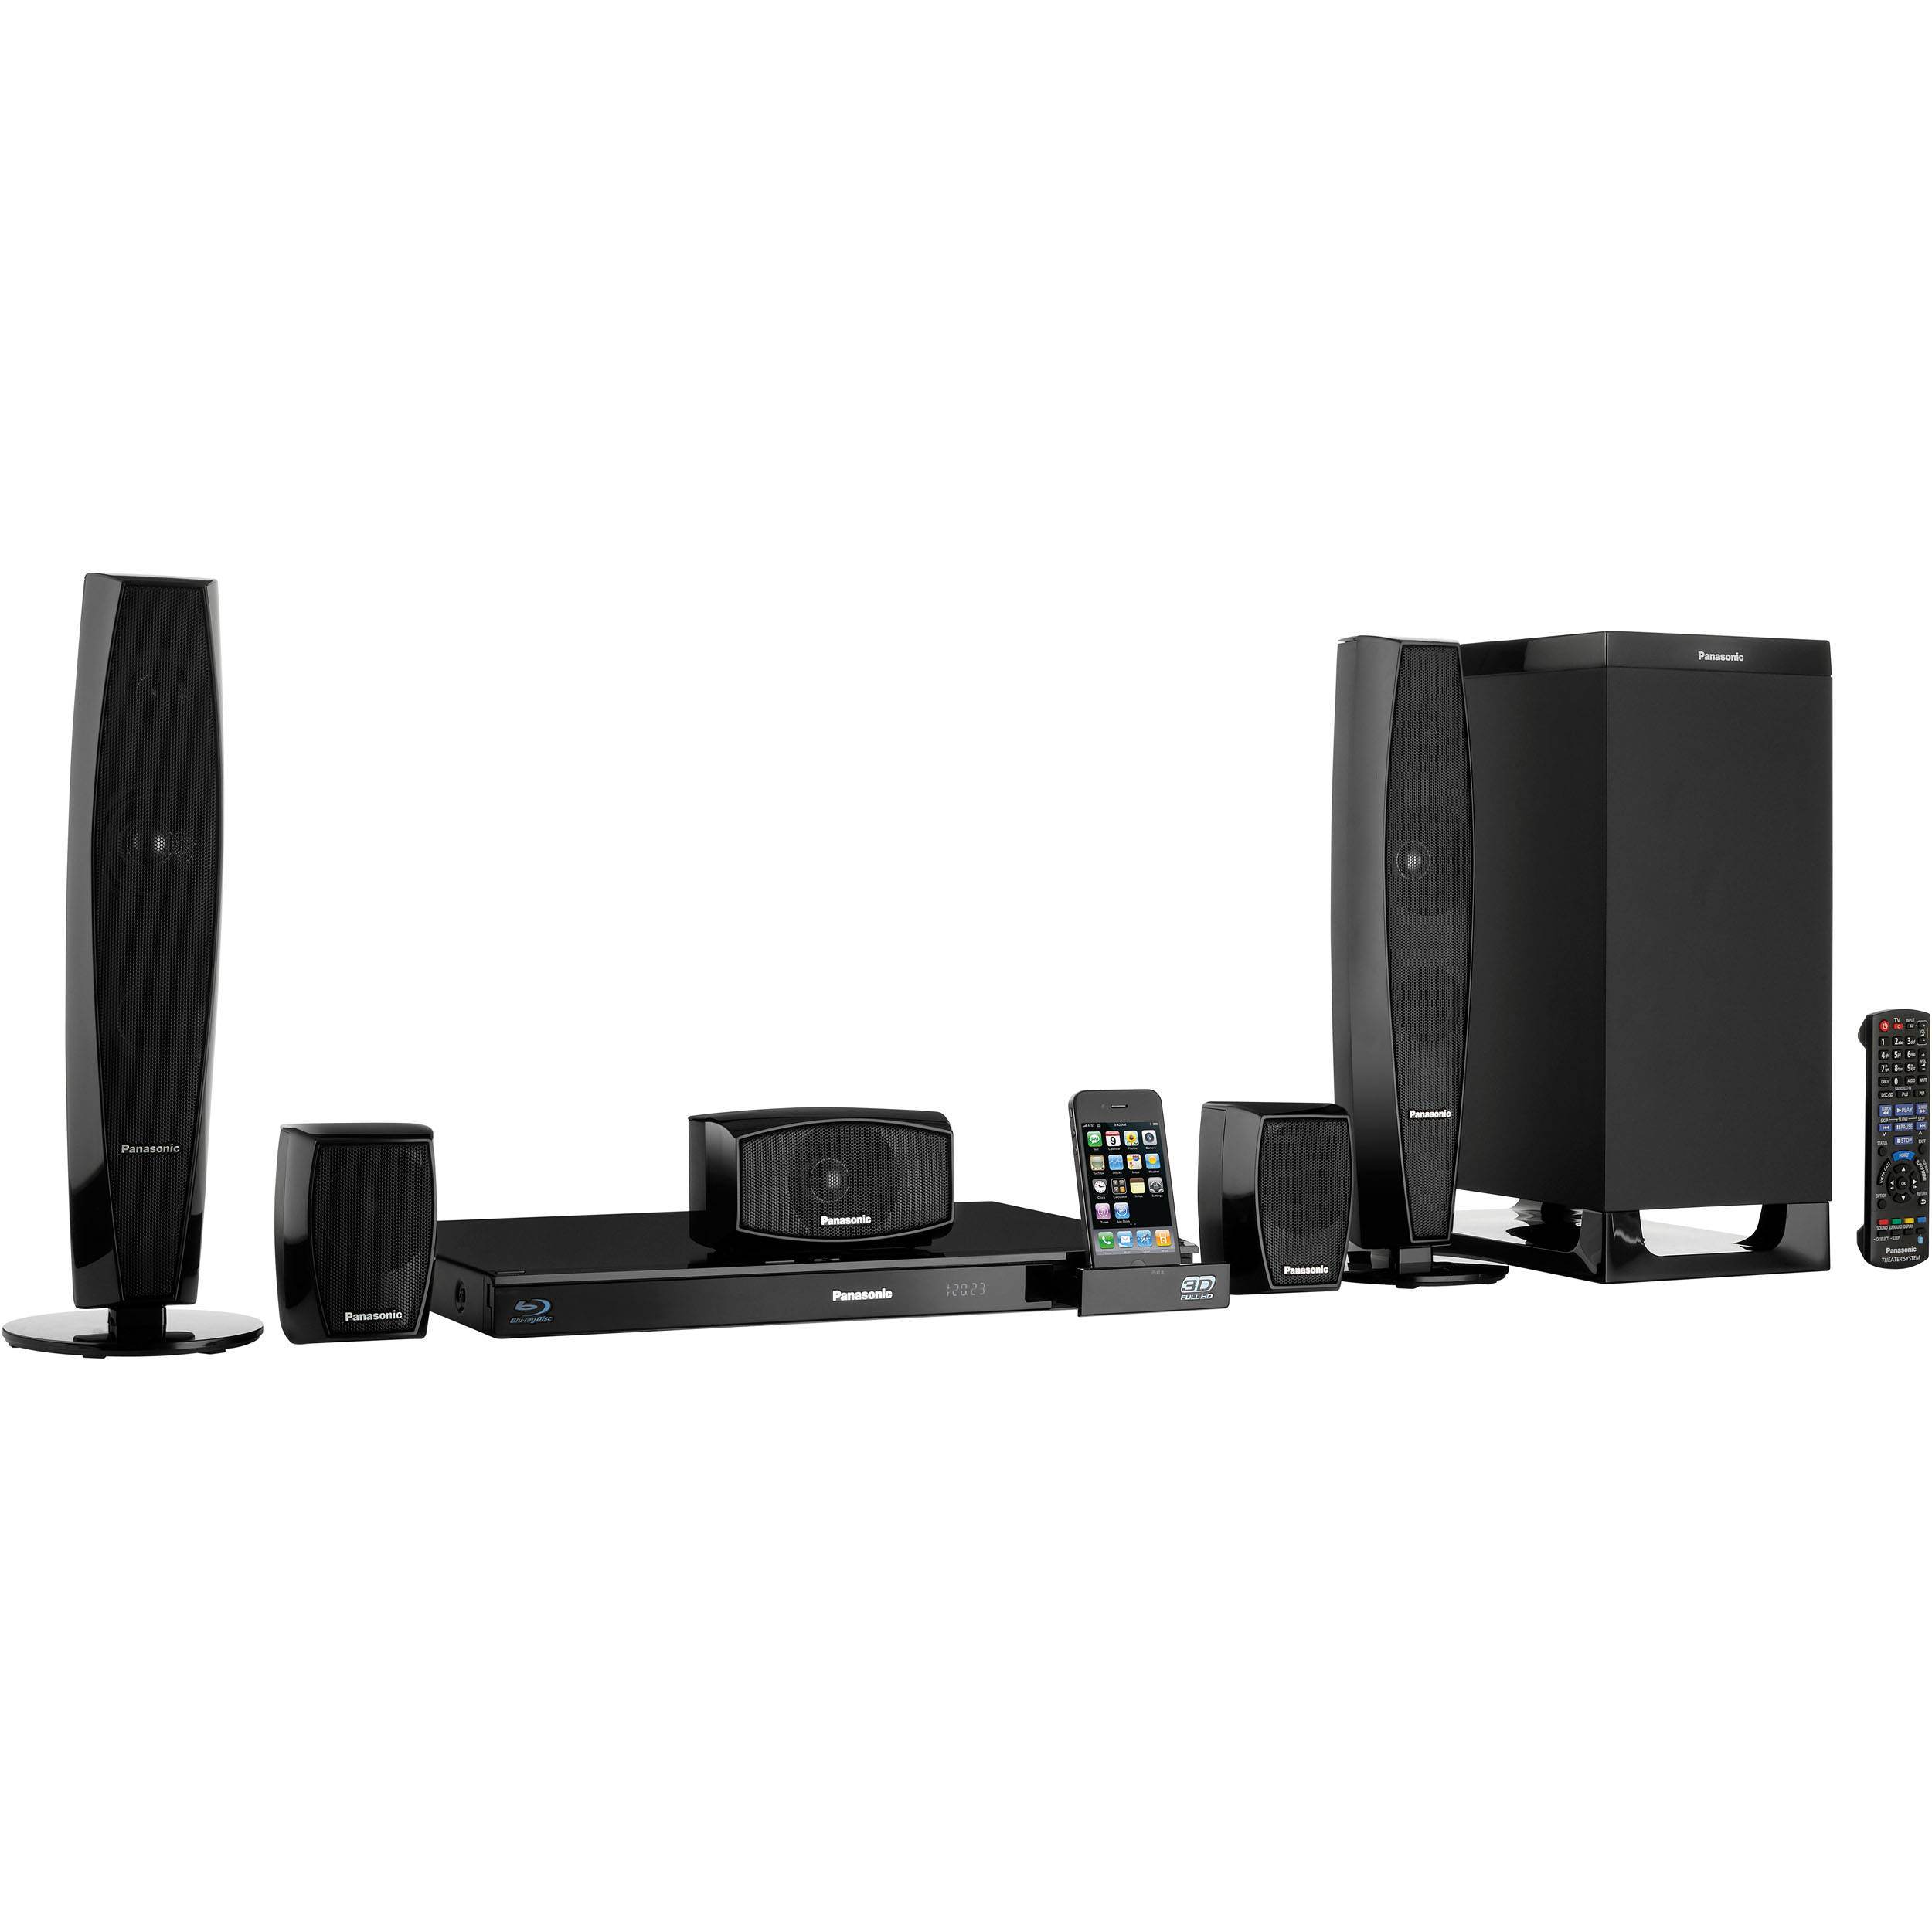 panasonic sc btt370 full hd 3d blu ray home theater sc btt370 rh bhphotovideo com panasonic theatre system soundbar manual panasonic home theater system manual